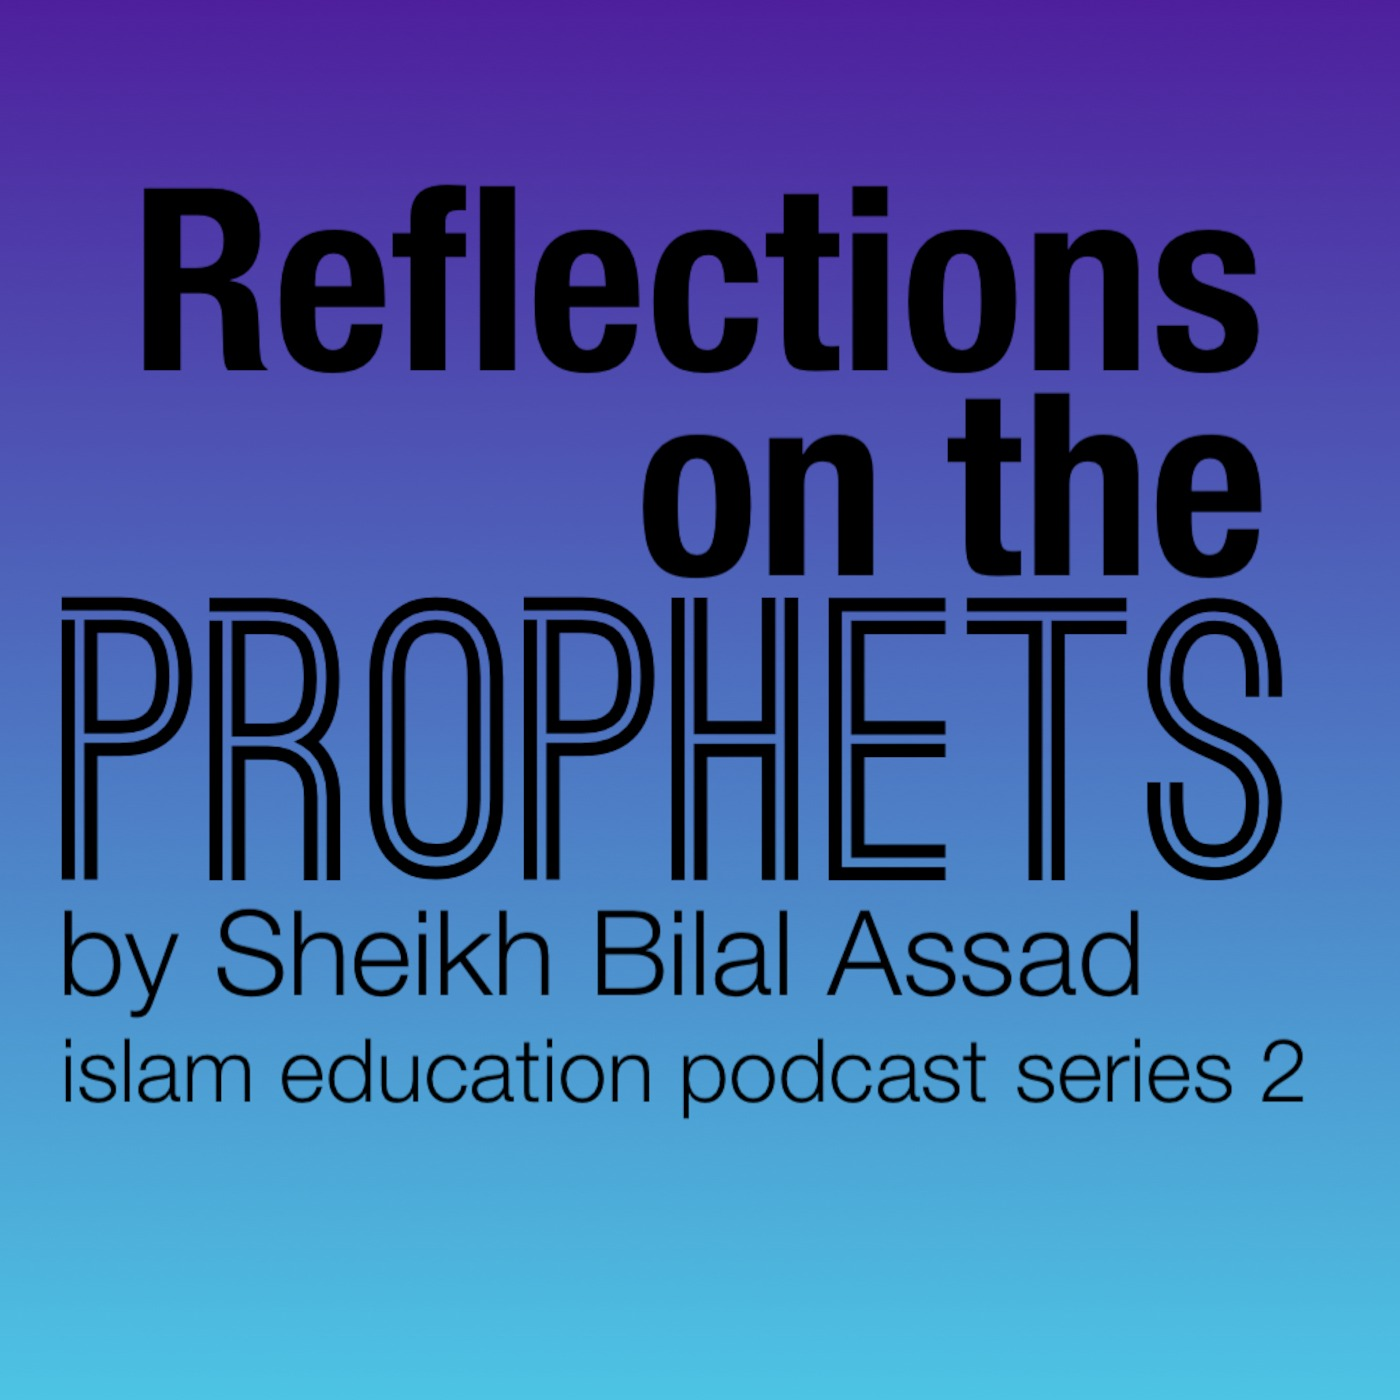 Reflections on the Prophets - 2